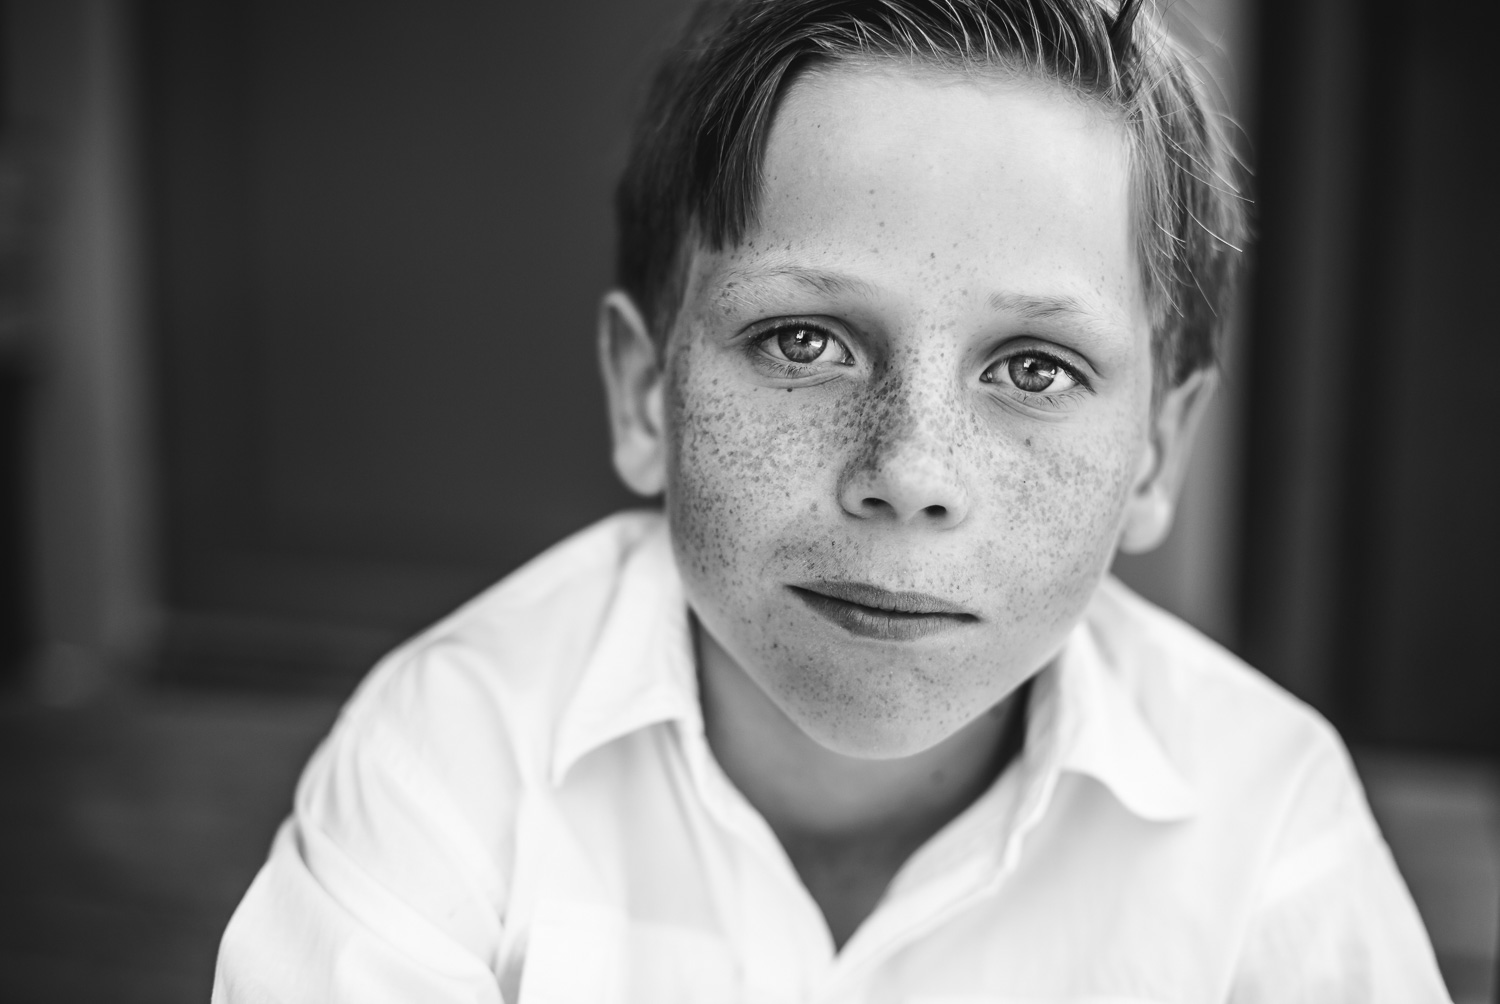 A-black-and-white-portrait-of-a-boy-with-freckles-by-Sandra-Jolly-Stockholm-child-photographer.jpg